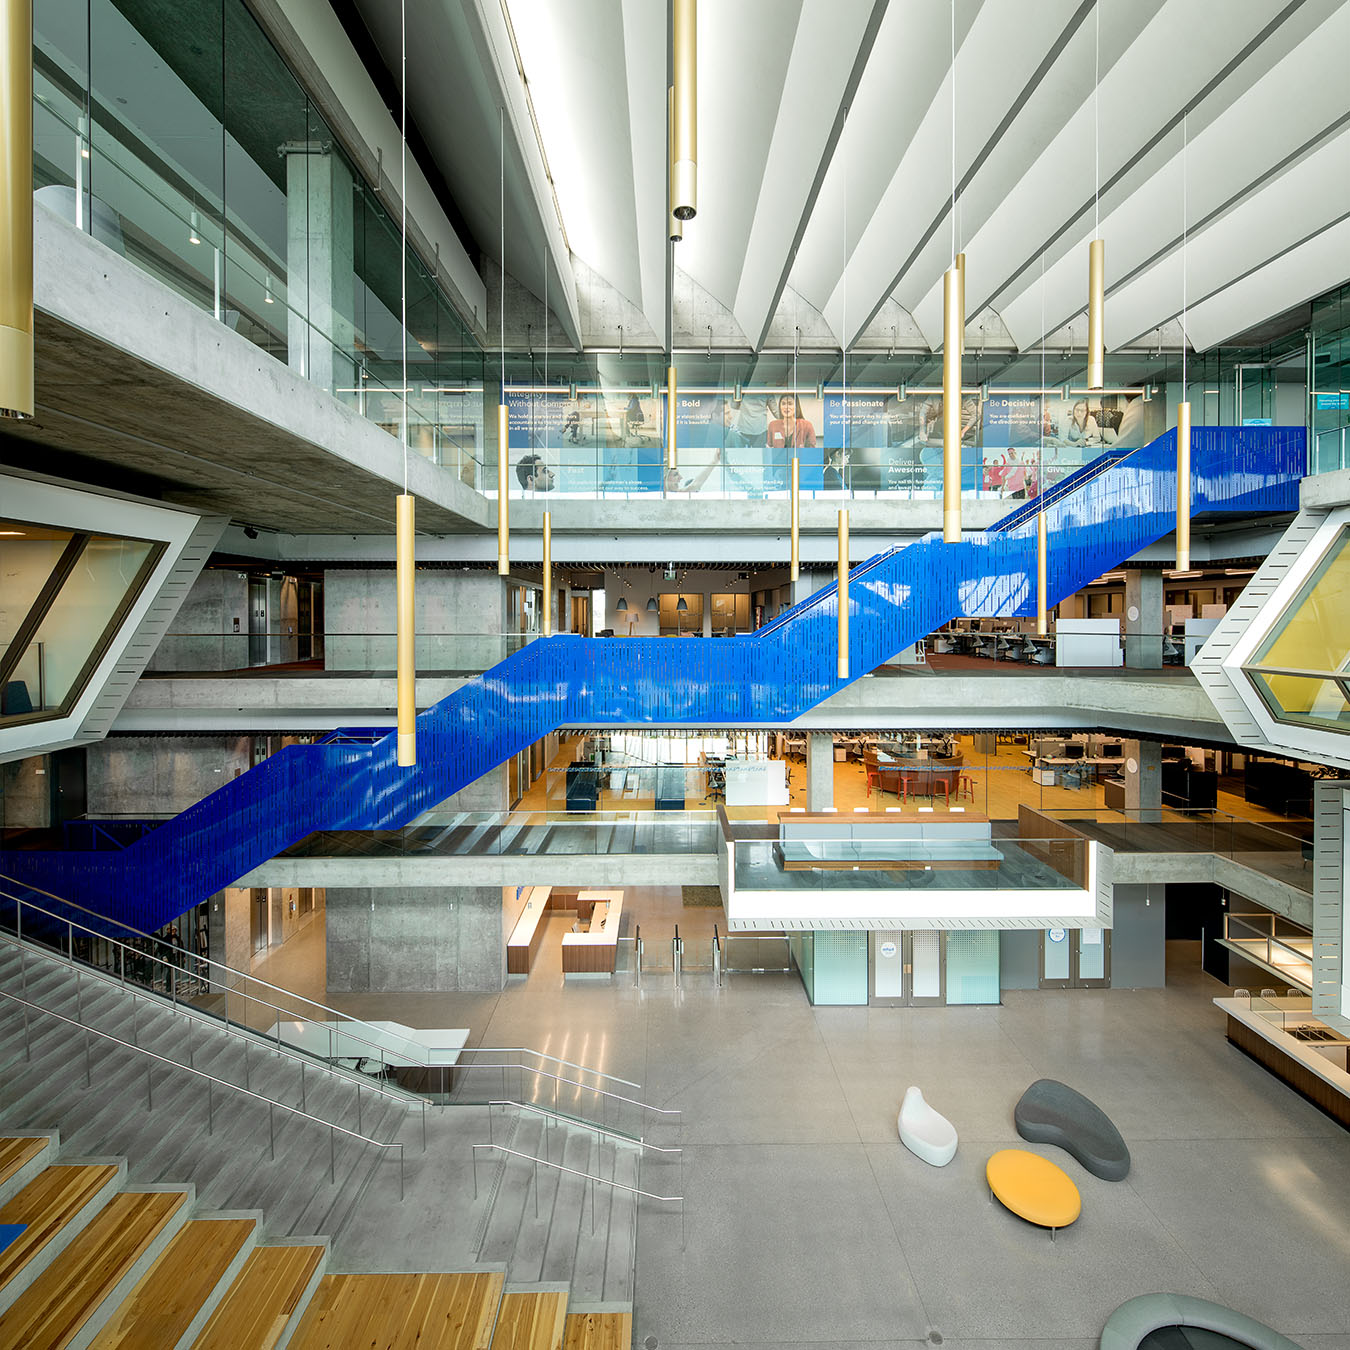 Intuit lobby and feature stair